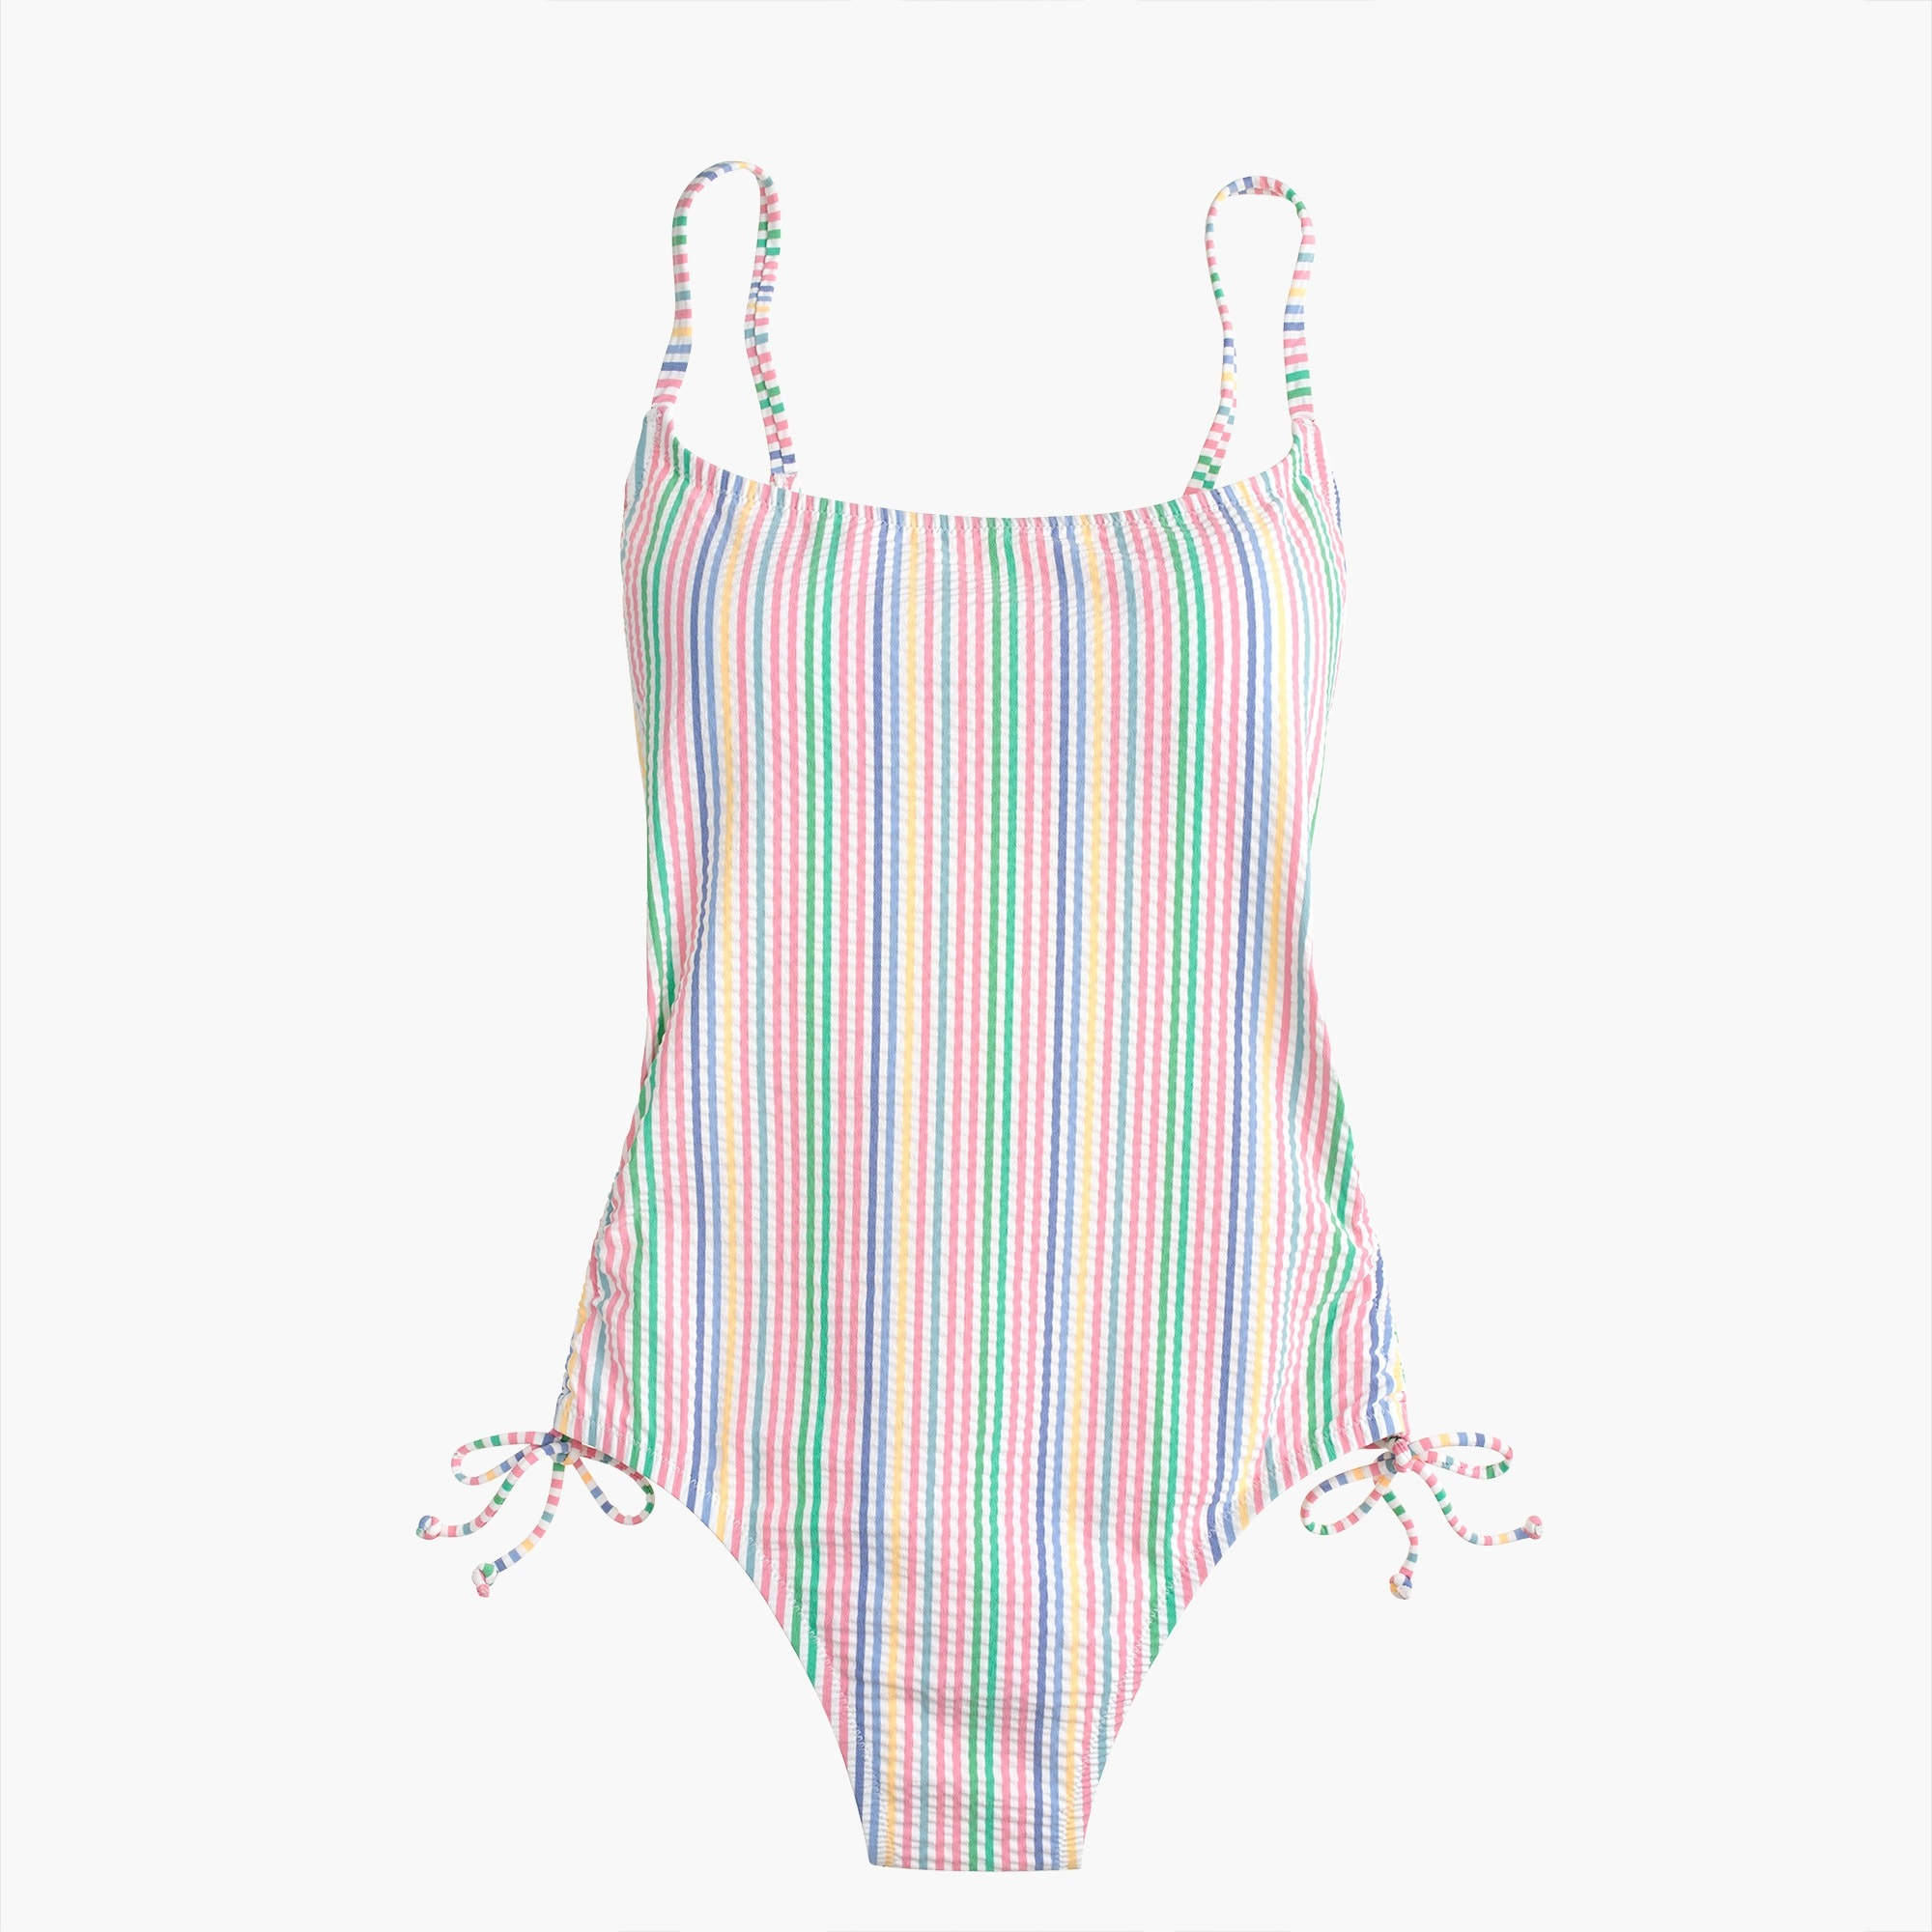 Ruched side one-piece swimsuit in rainbow seersucker